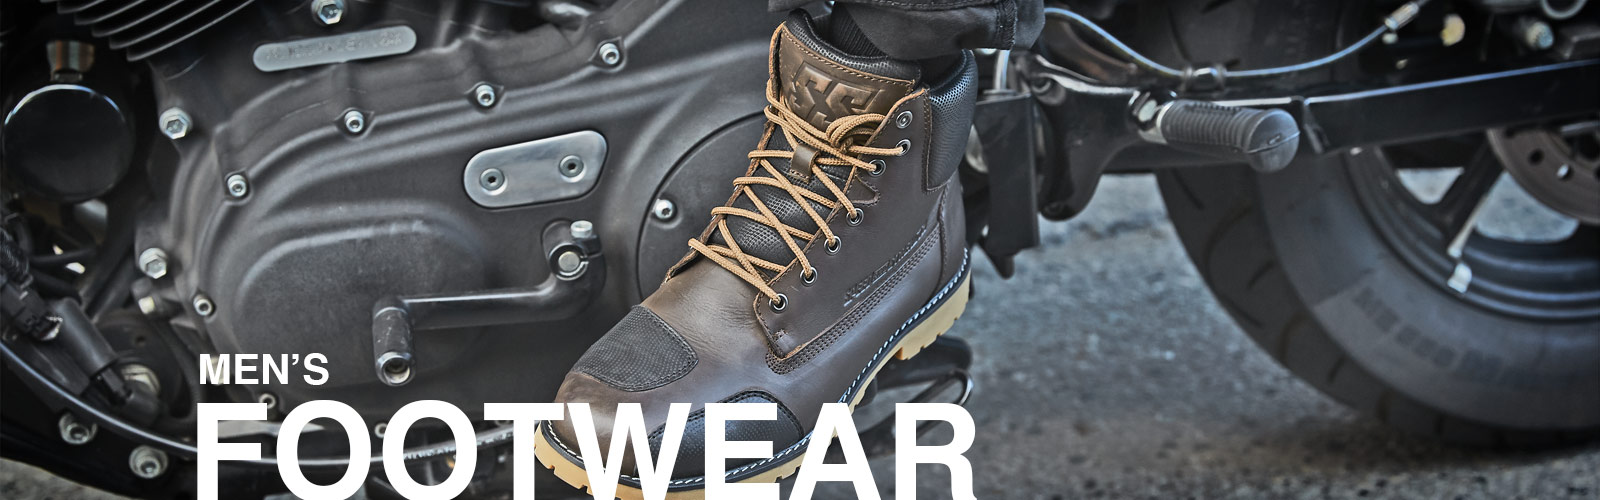 Speed and Strength Men's Motorcycle Footwear